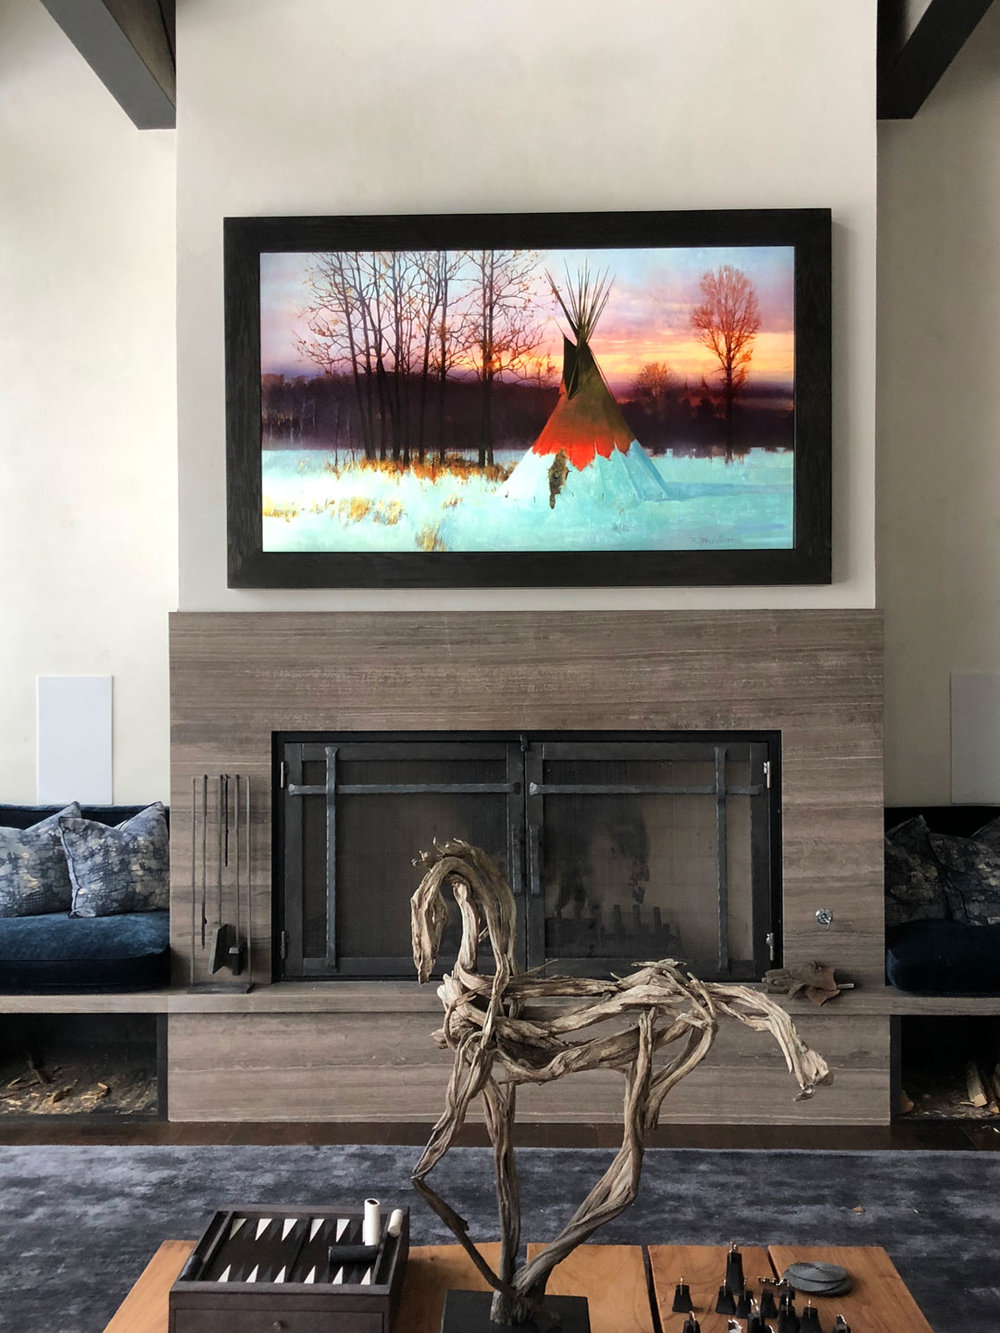 Pictured: Custom Framed 4k Sony TV w/ PIXoils Digital Art